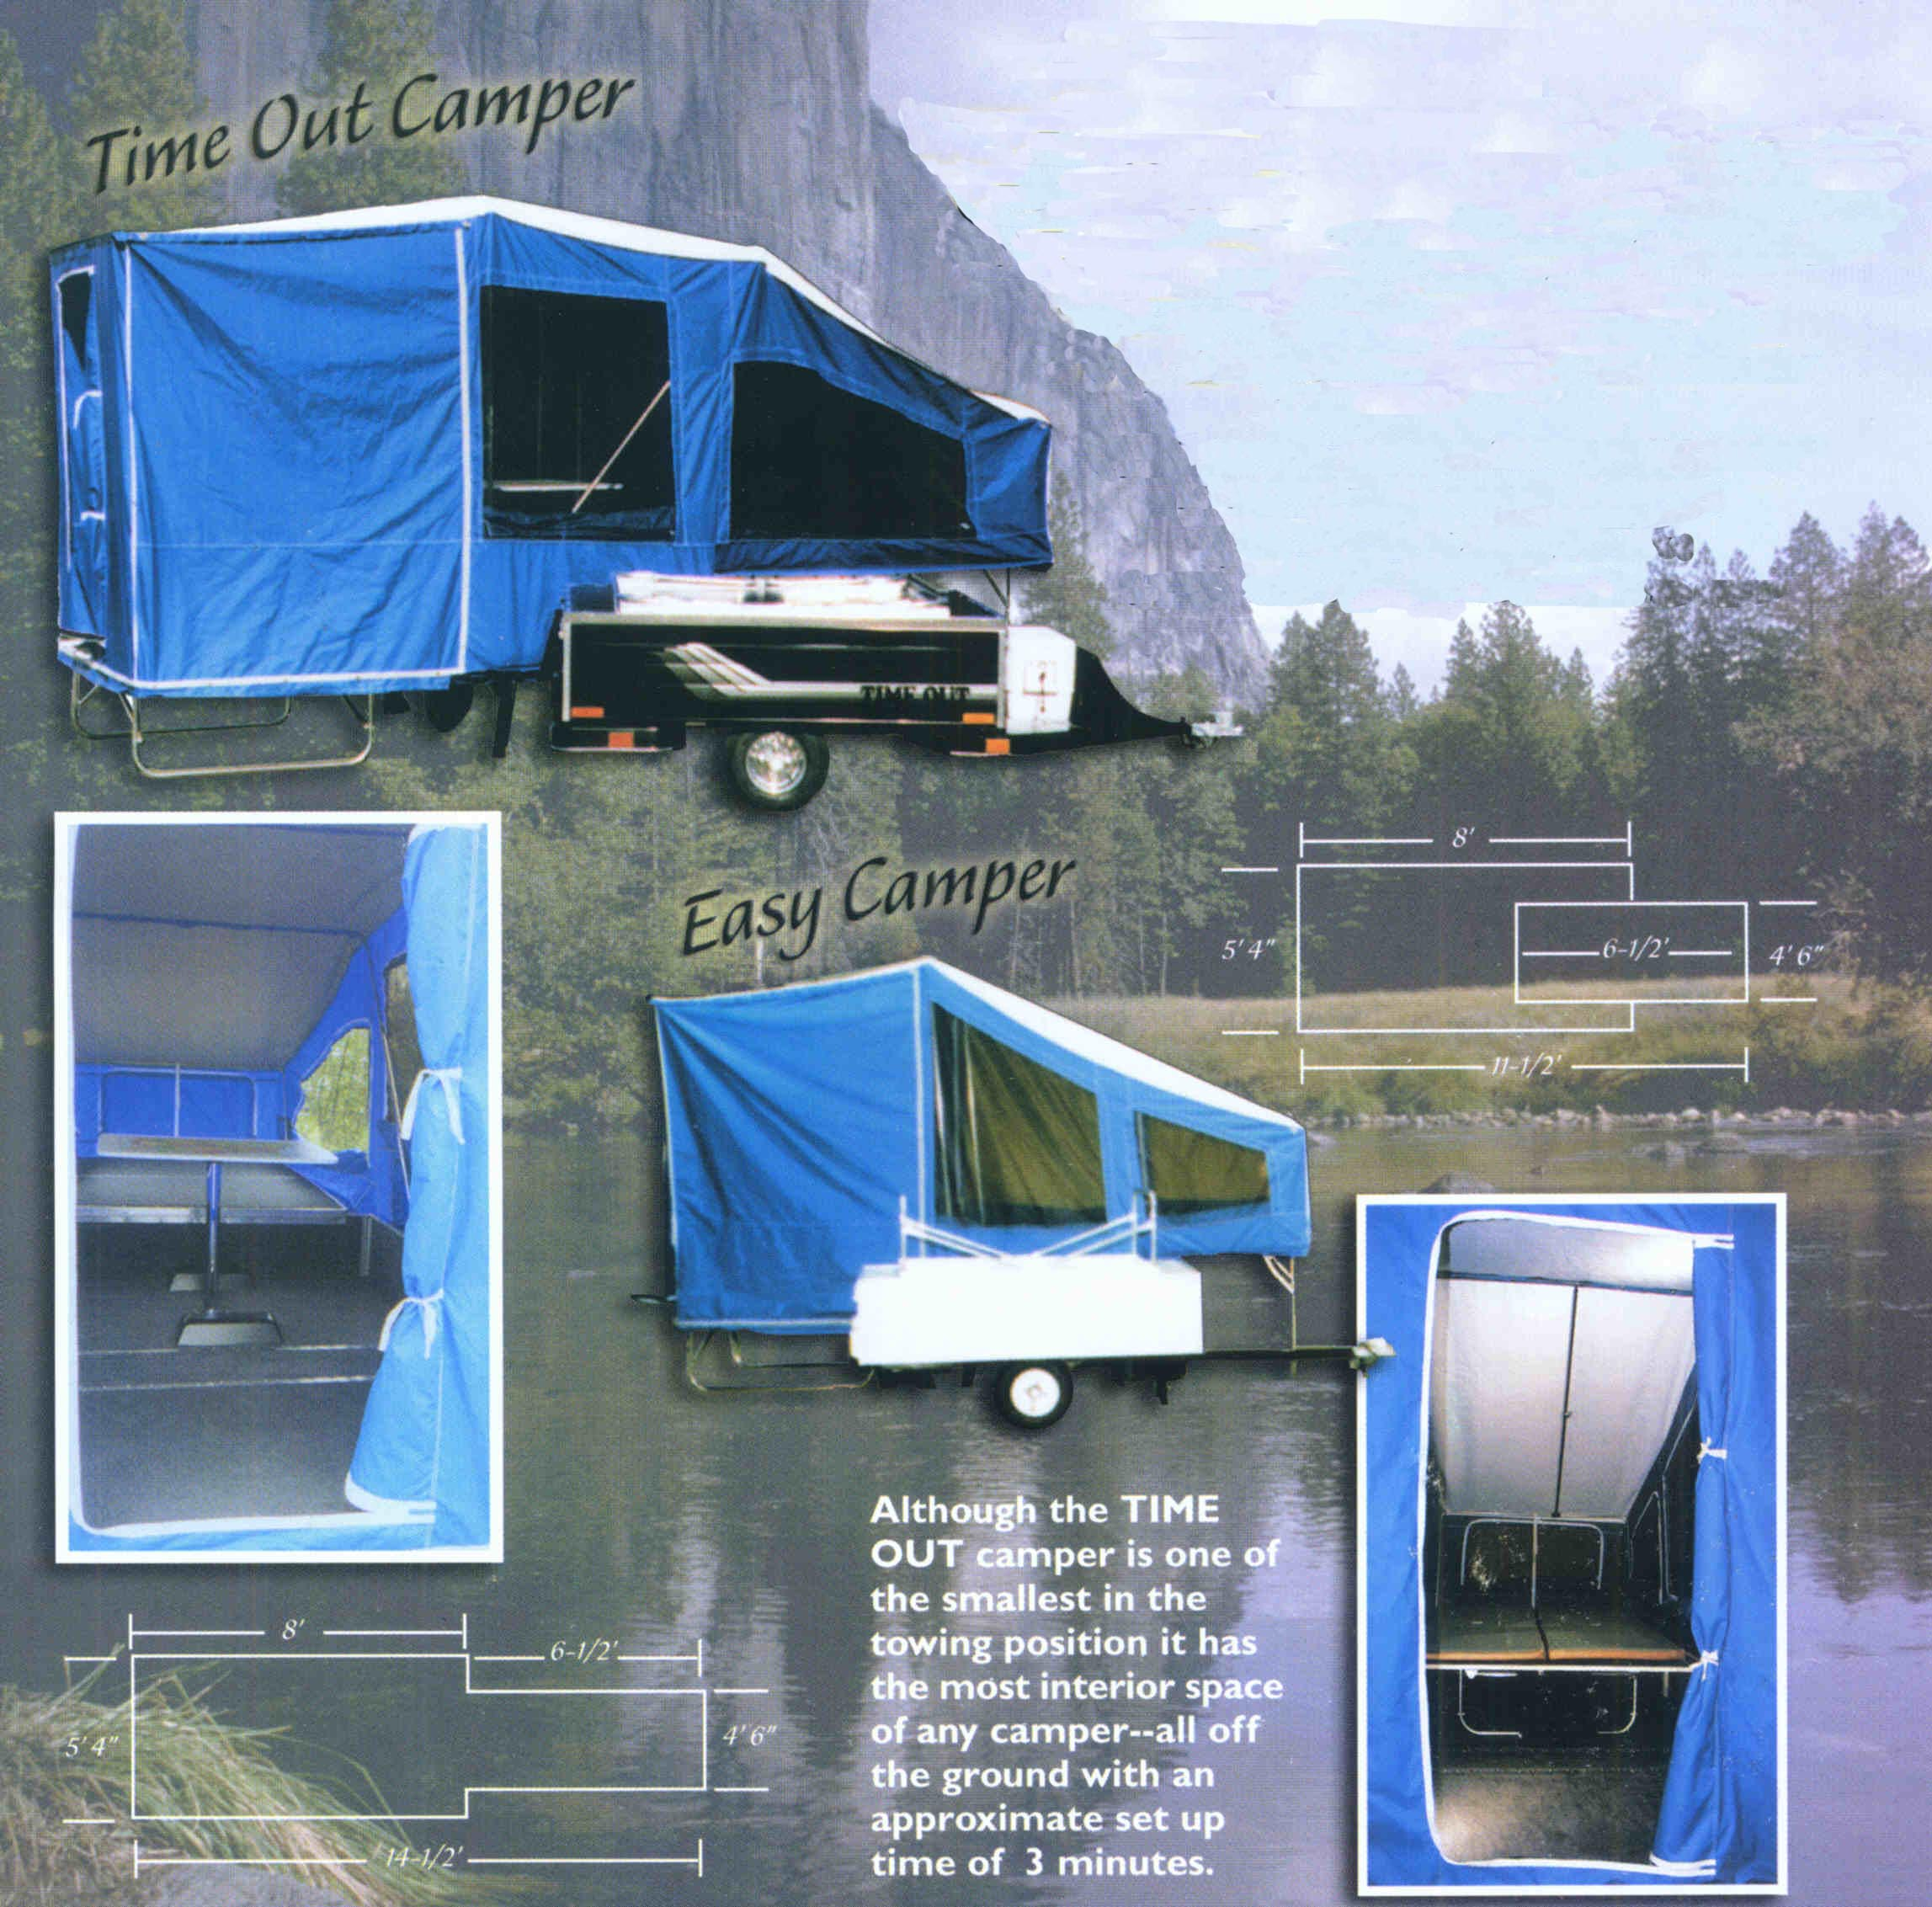 The Timeout And Easy Camper Motorcycle Pullable Camping Trailers